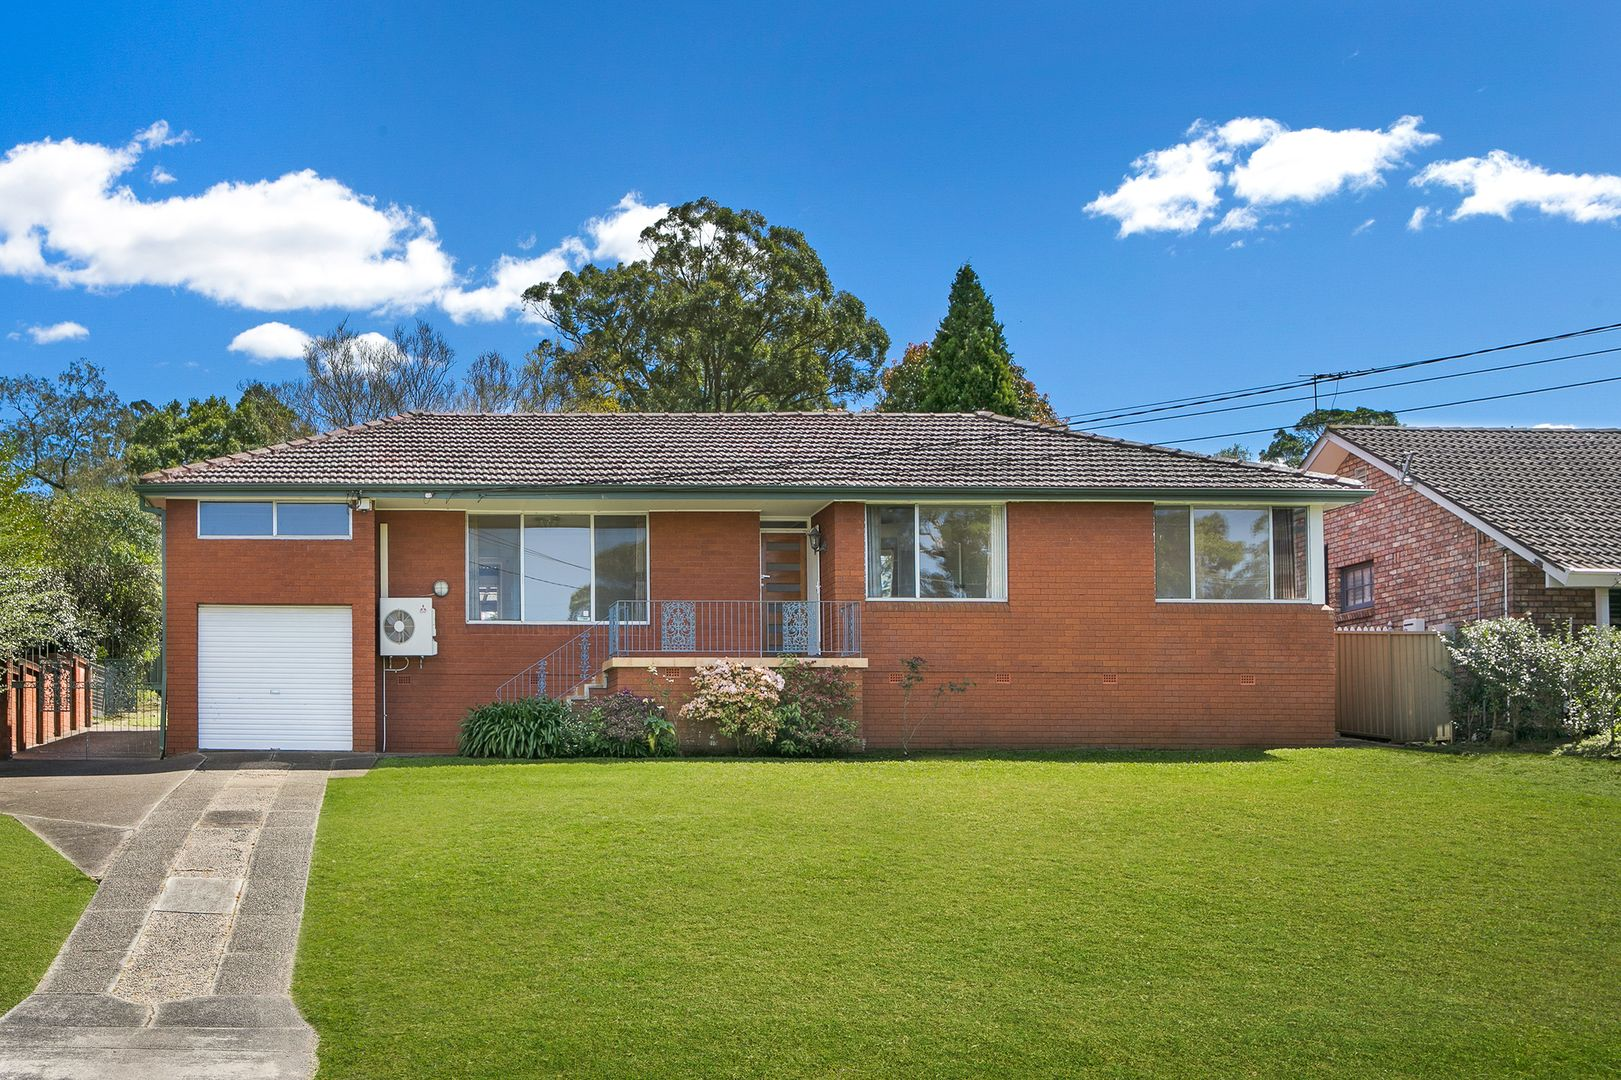 58 Karril Avenue, Beecroft NSW 2119, Image 0